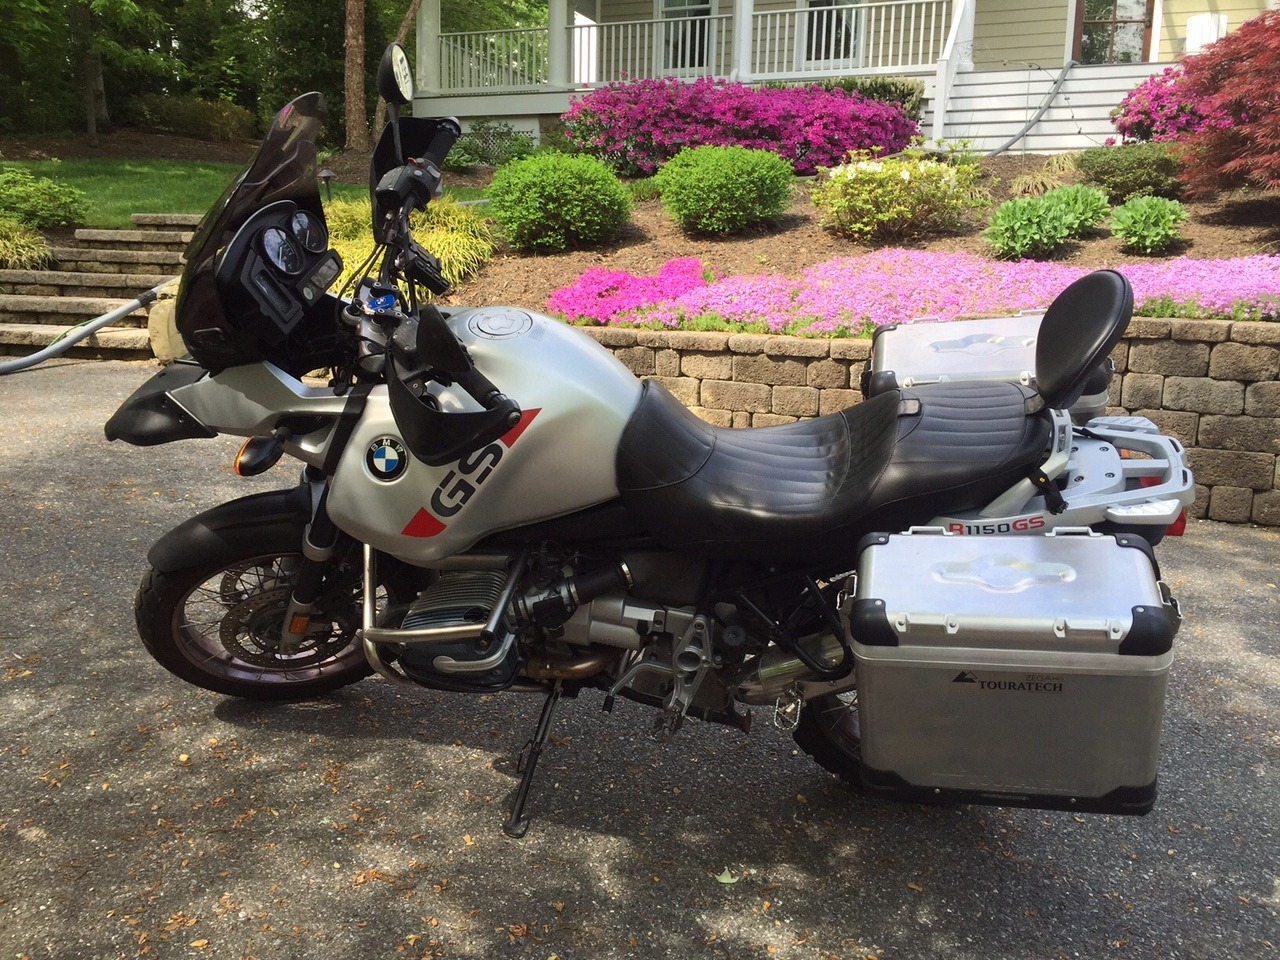 2004 BMW R 1150 GS ADVENTURE, motorcycle listing